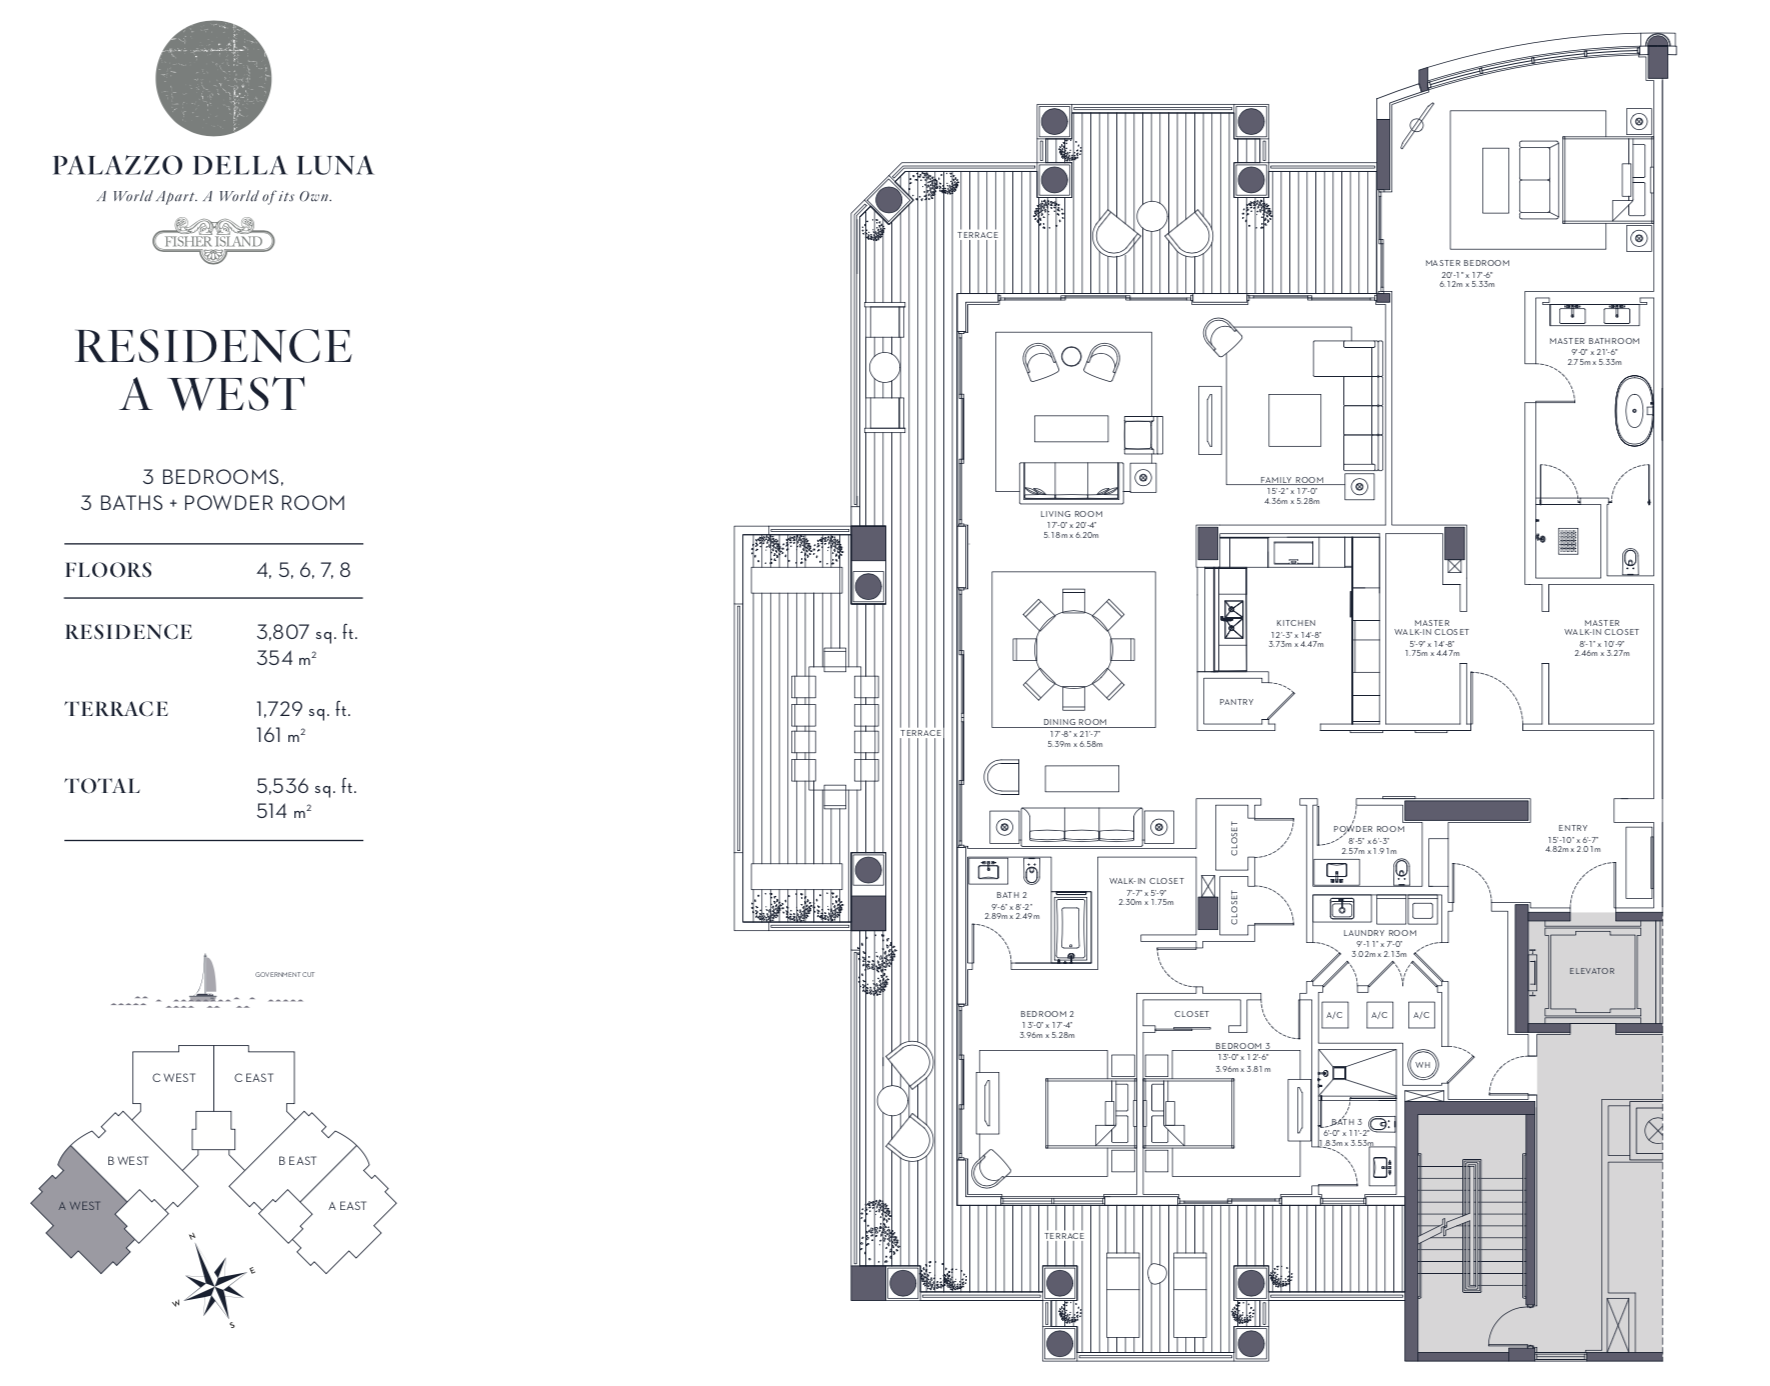 Palazzo della Luna| Residence A West Floors 4,5,6,7 and 8